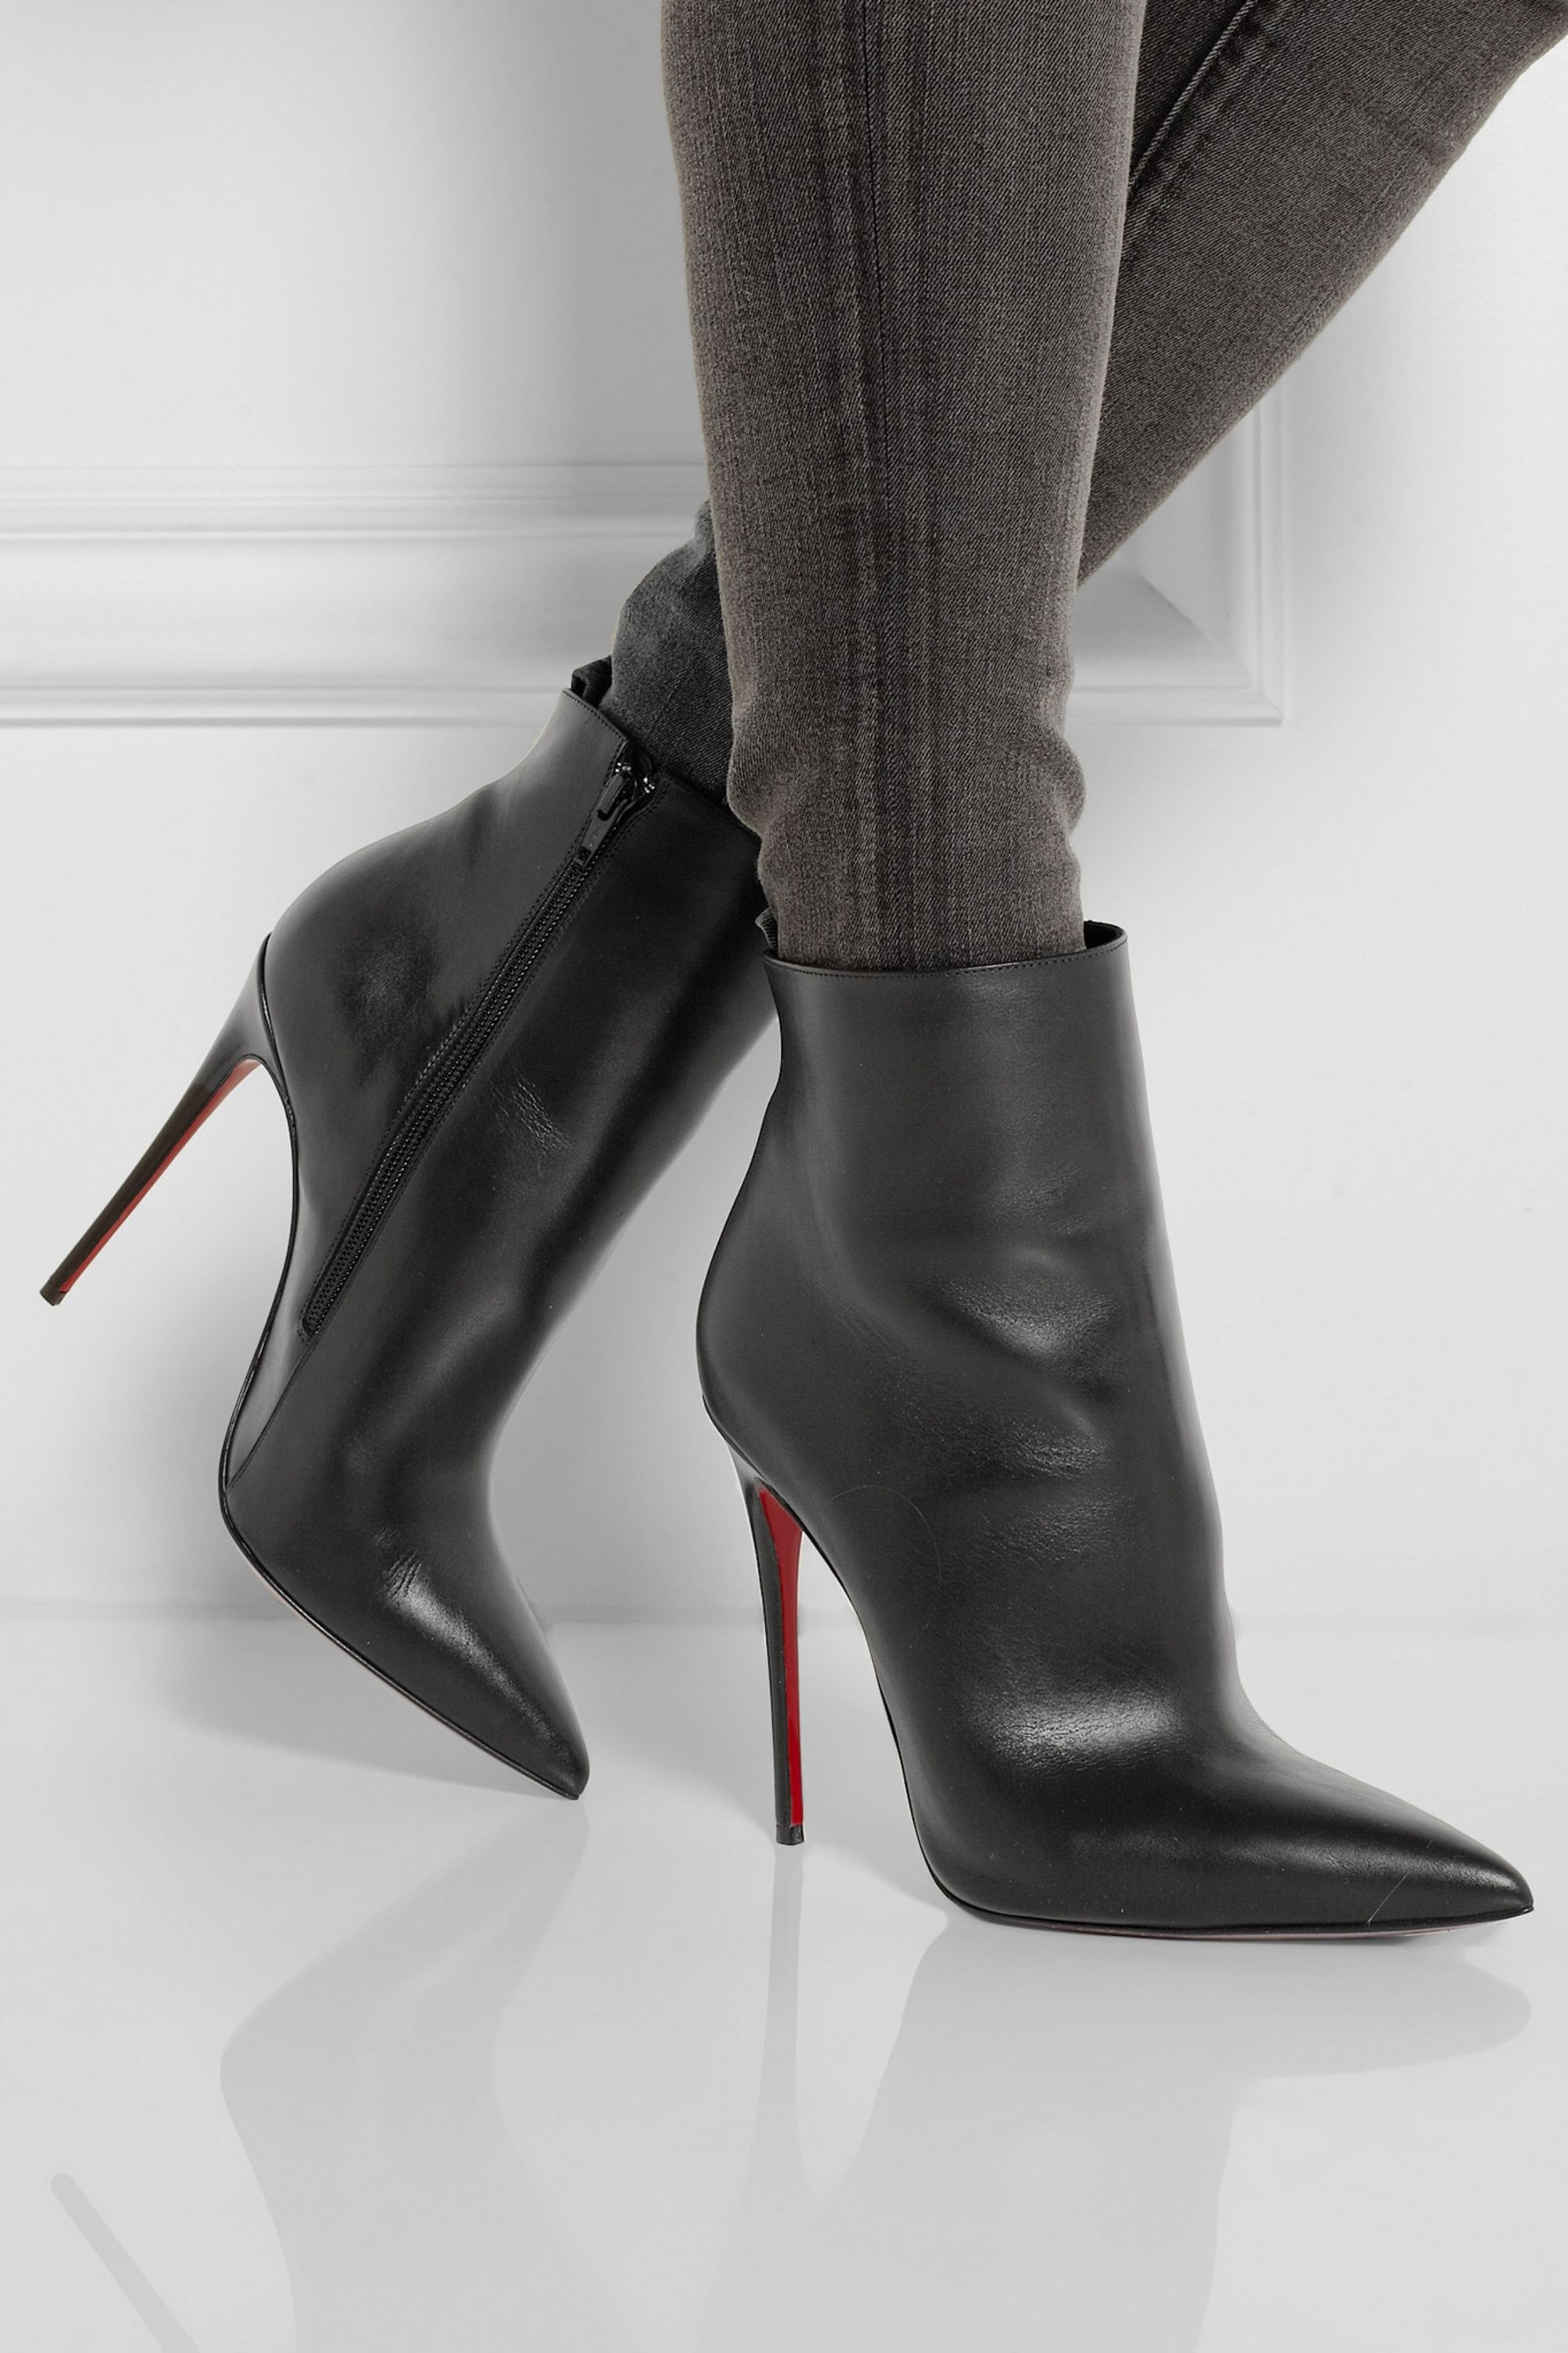 Christian Louboutin So Kate 120 leather ankle boots